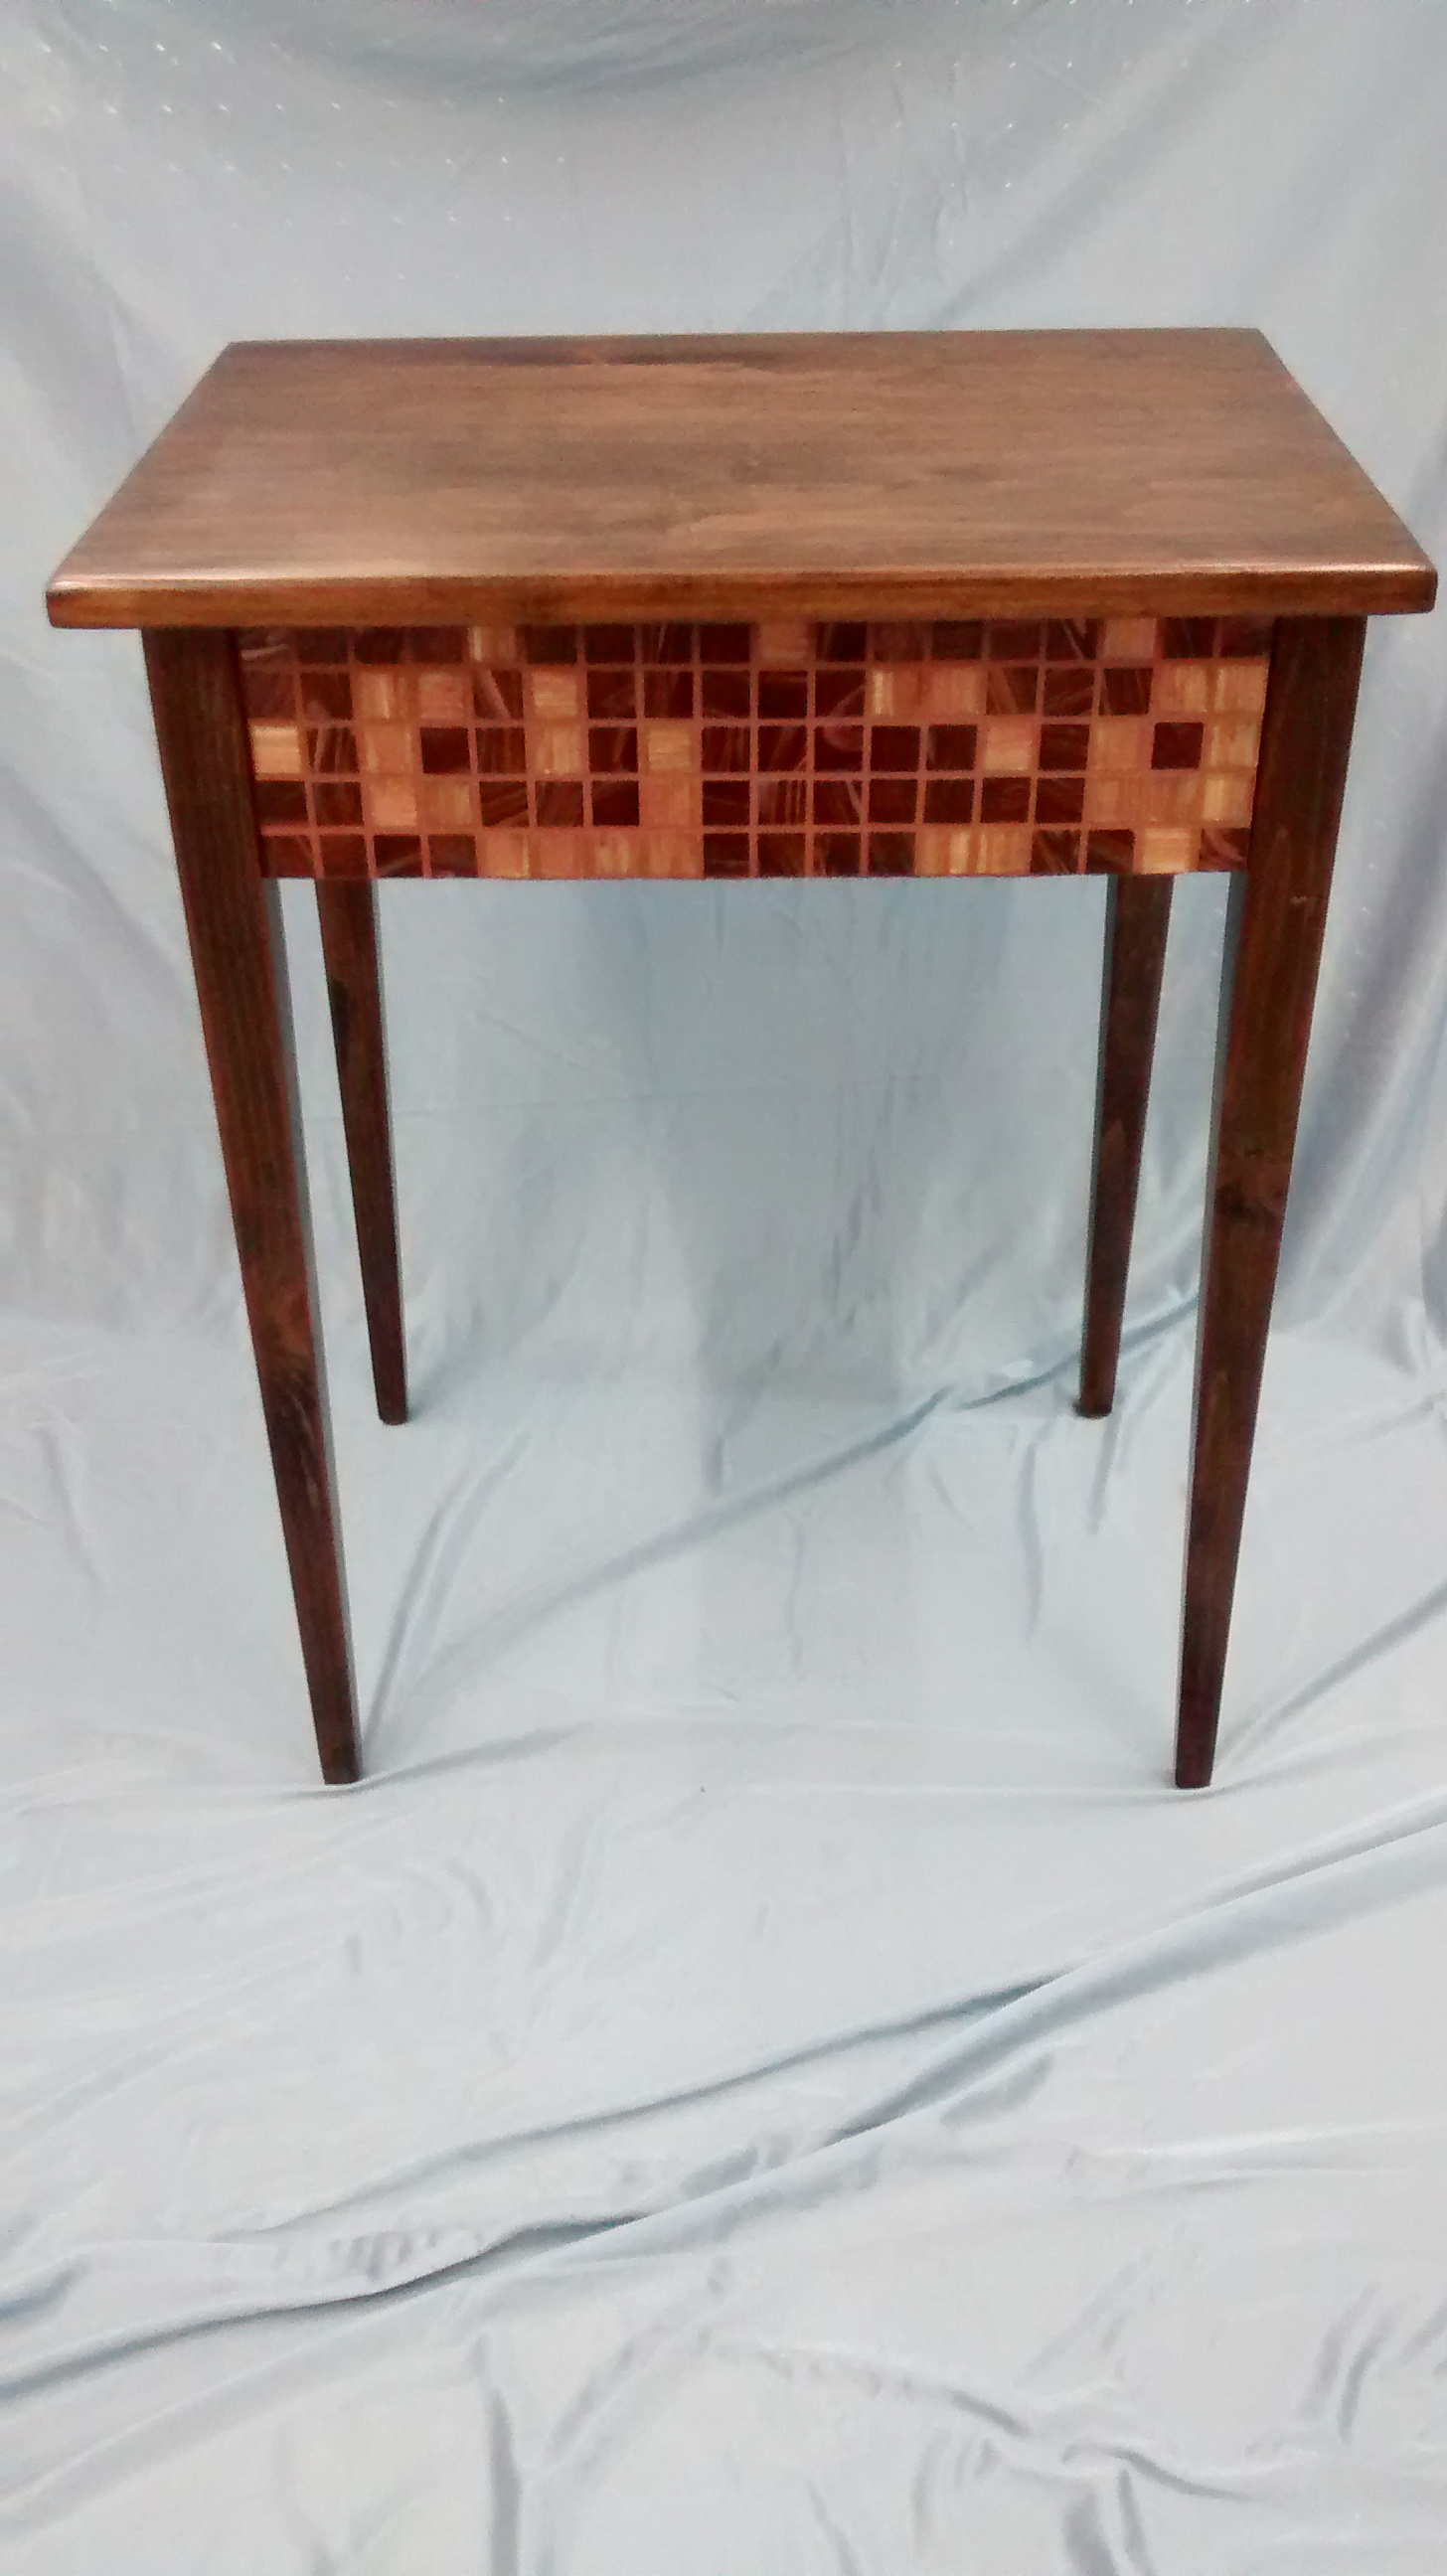 Wooden End Table with Mosaic Tile Rails